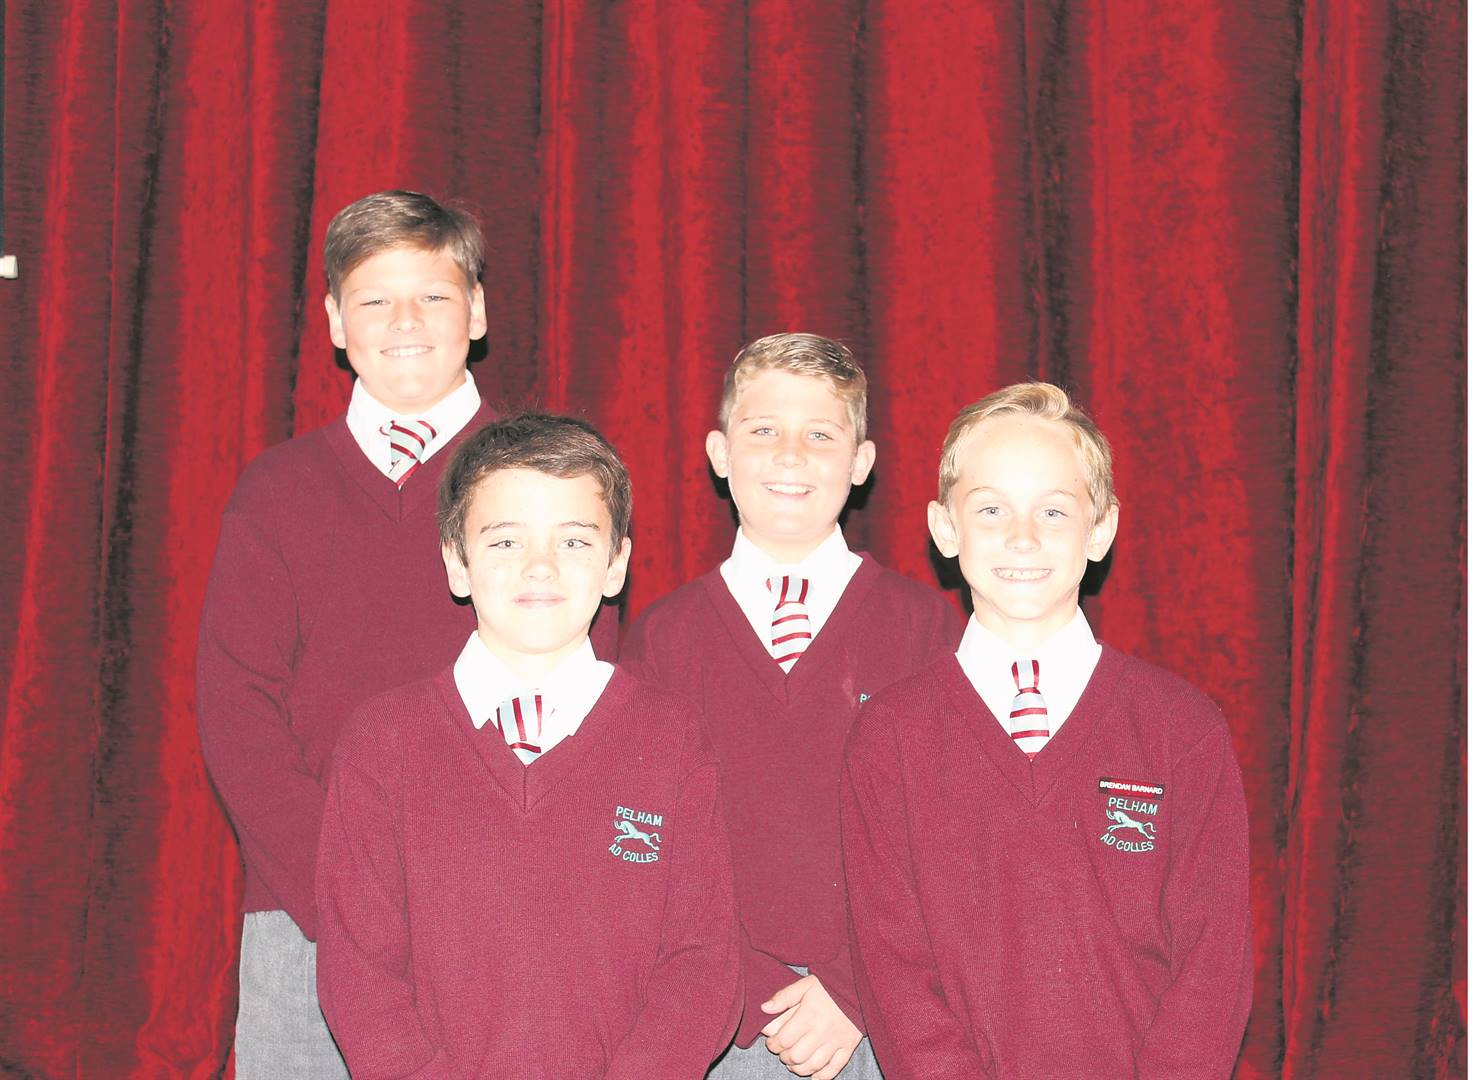 The following boys from Pelham Senior Primary have been selected to represent the KwaZulu-Natal Action Cricket Teams: (back from left) Ross Tocknell (U13) and Tiehardt van Niekerk (U11) with Fabian­ da Rosa (U11) and Brendan Barnard (U11) in front.PHOTO: supplied